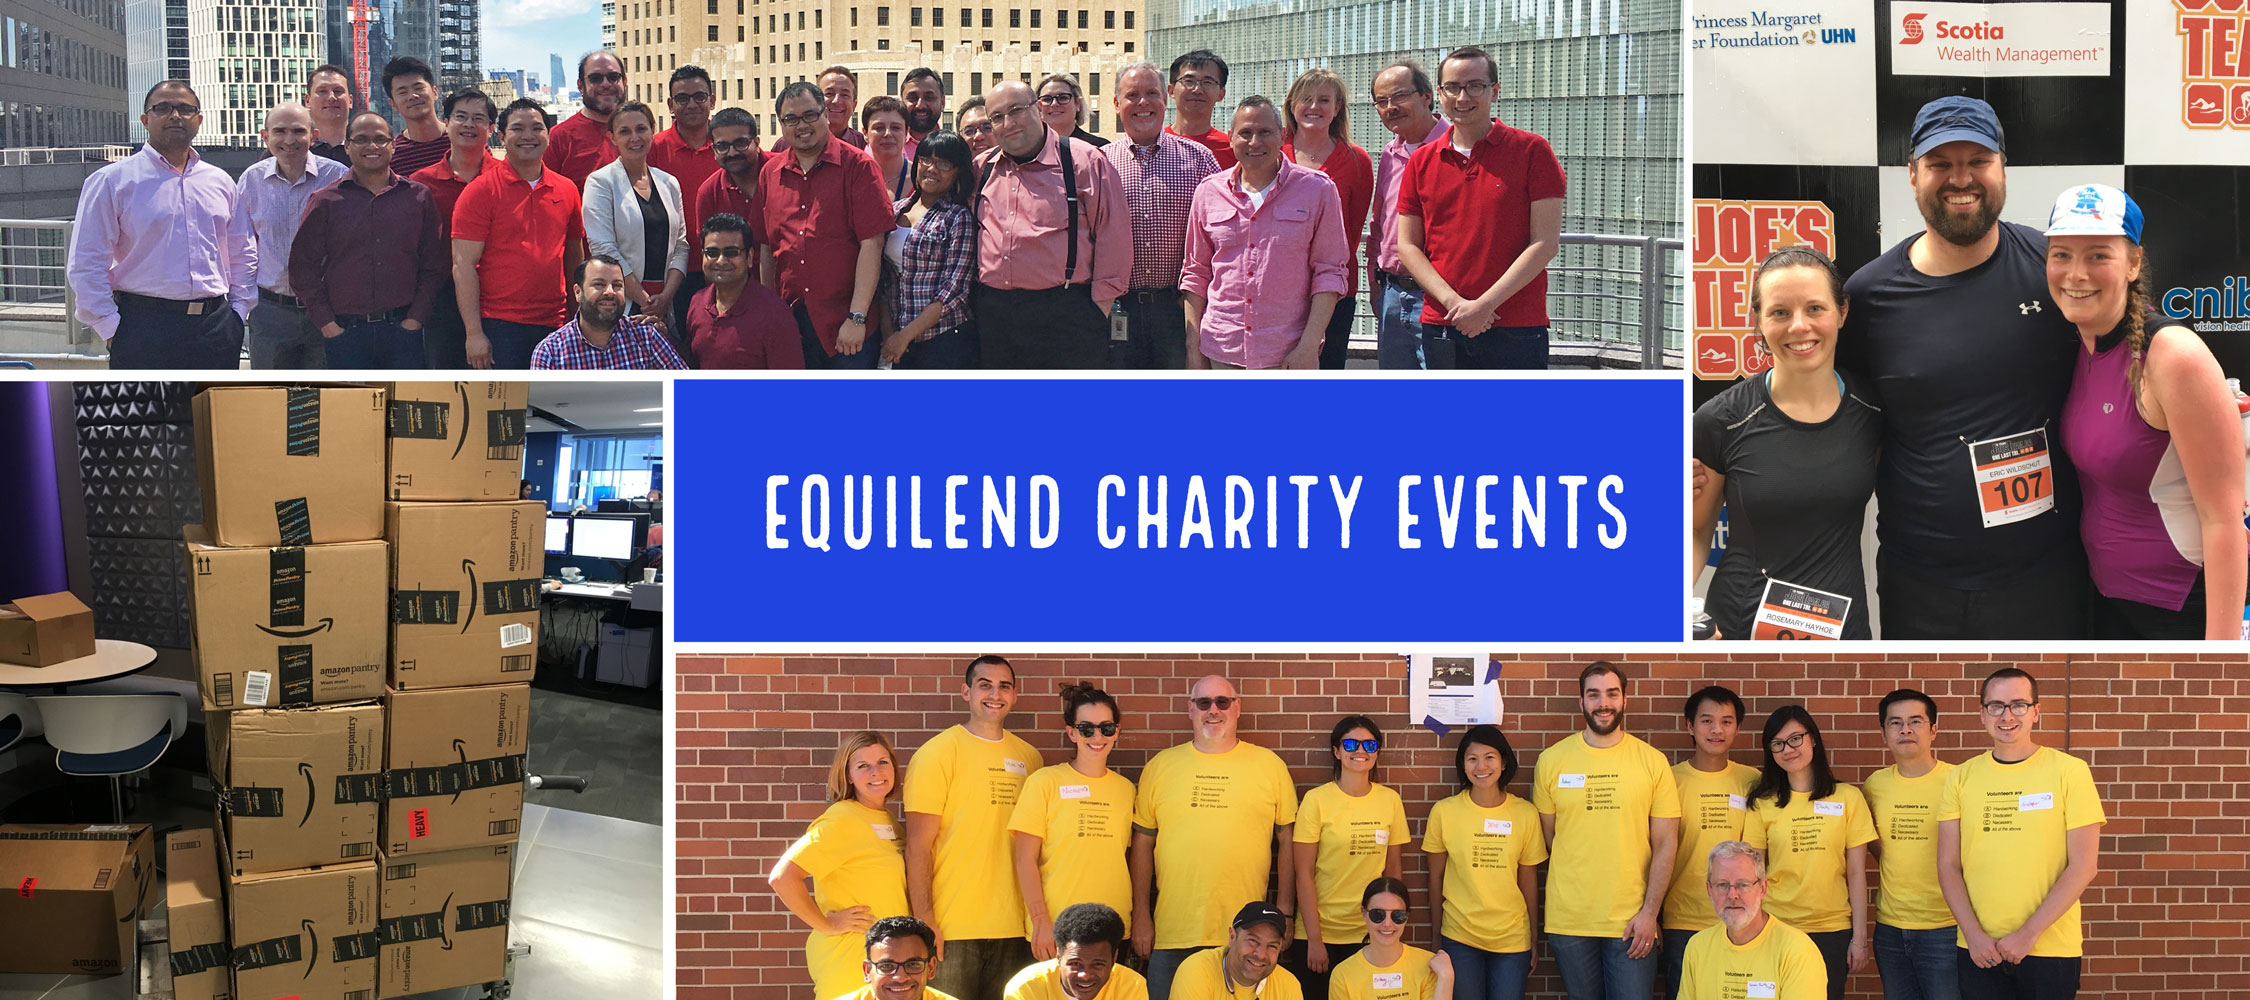 EquiLend-Charity-Wide-Slider-sized2